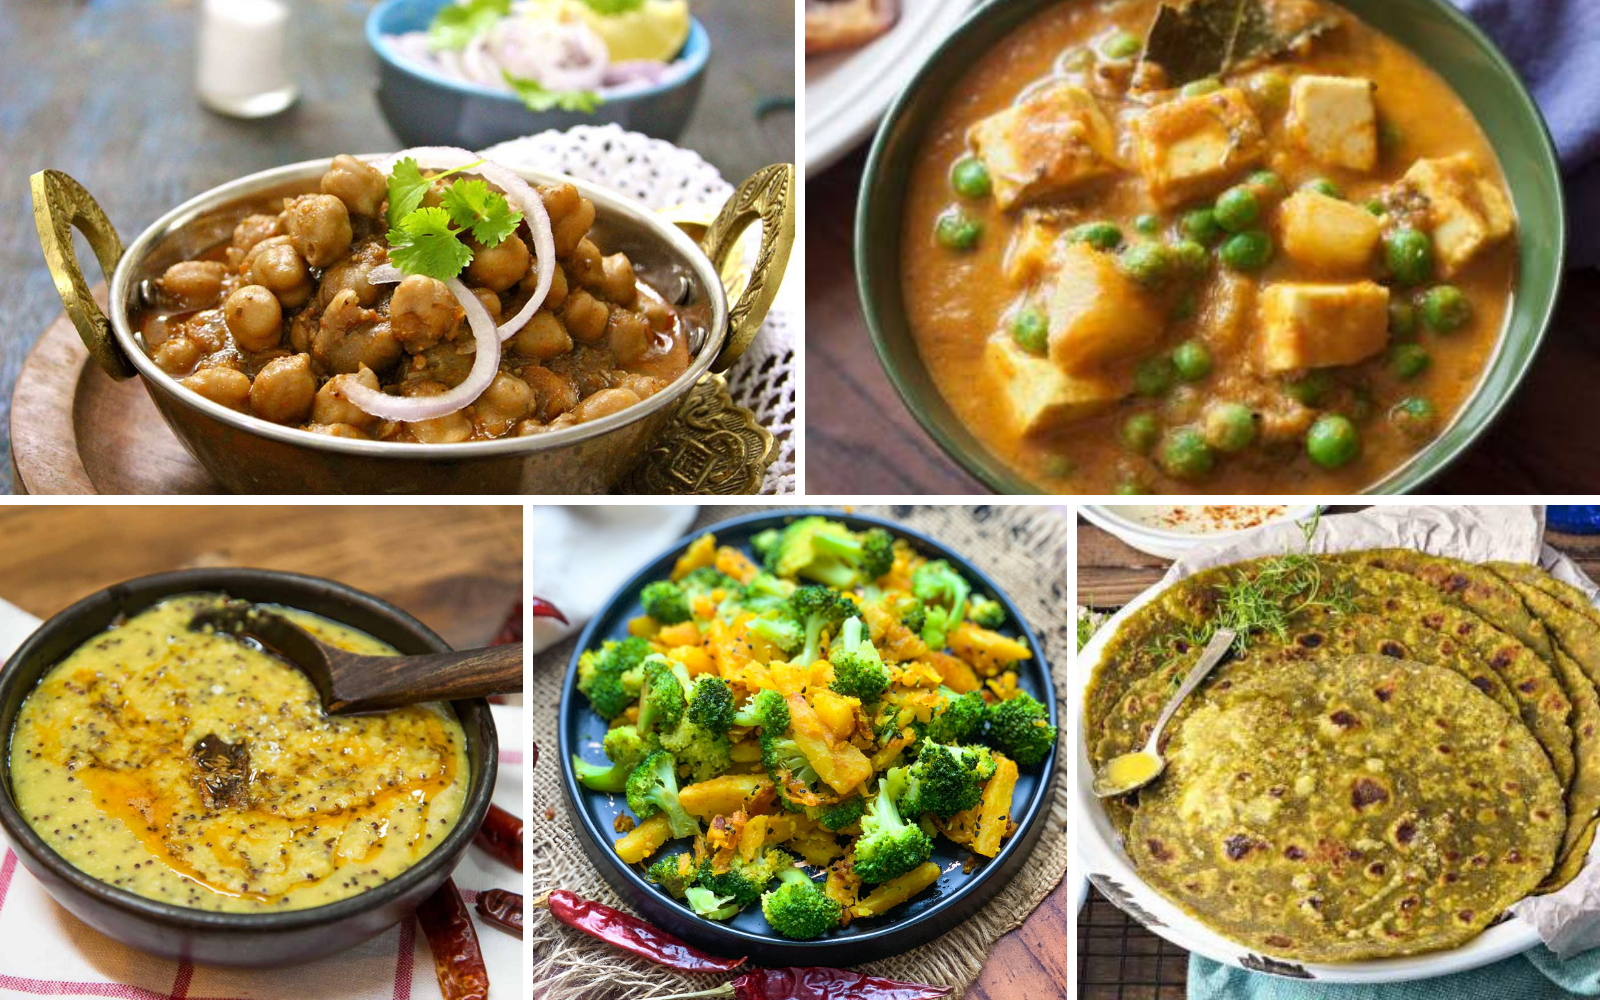 High Protein Indian Vegetarian Main Course Recipes For Body